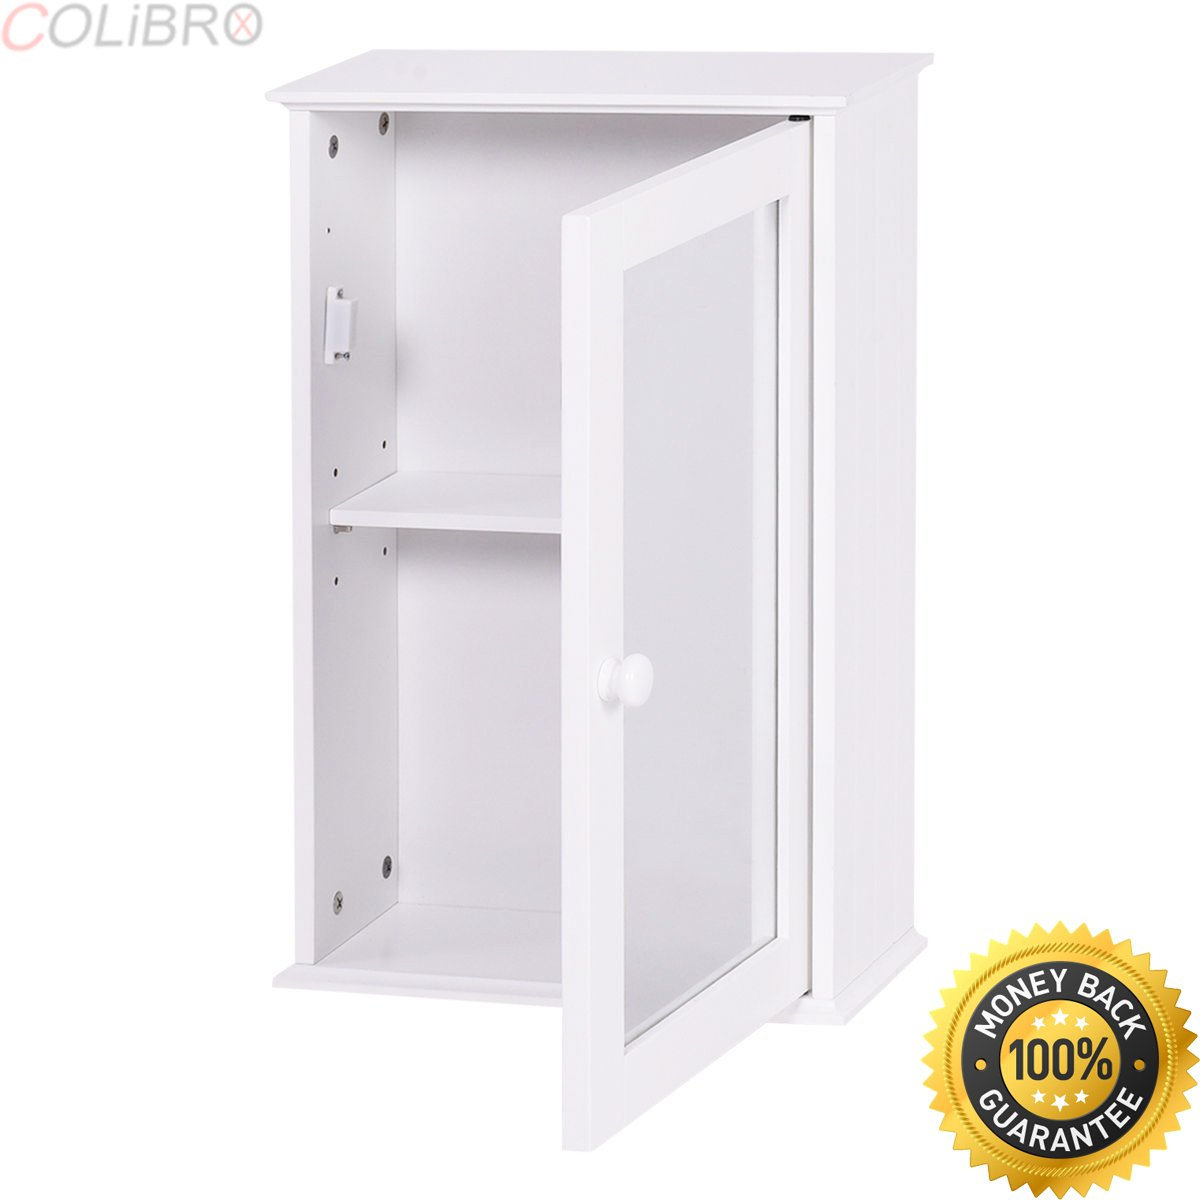 COLIBROX--New Bathroom Wall Cabinet Single Mirror Door Cupboard Storage Wood Shelf White. elegant home fashions neal 1 door medicine cabinet in white. best bathroom wall cabinets with mirror.